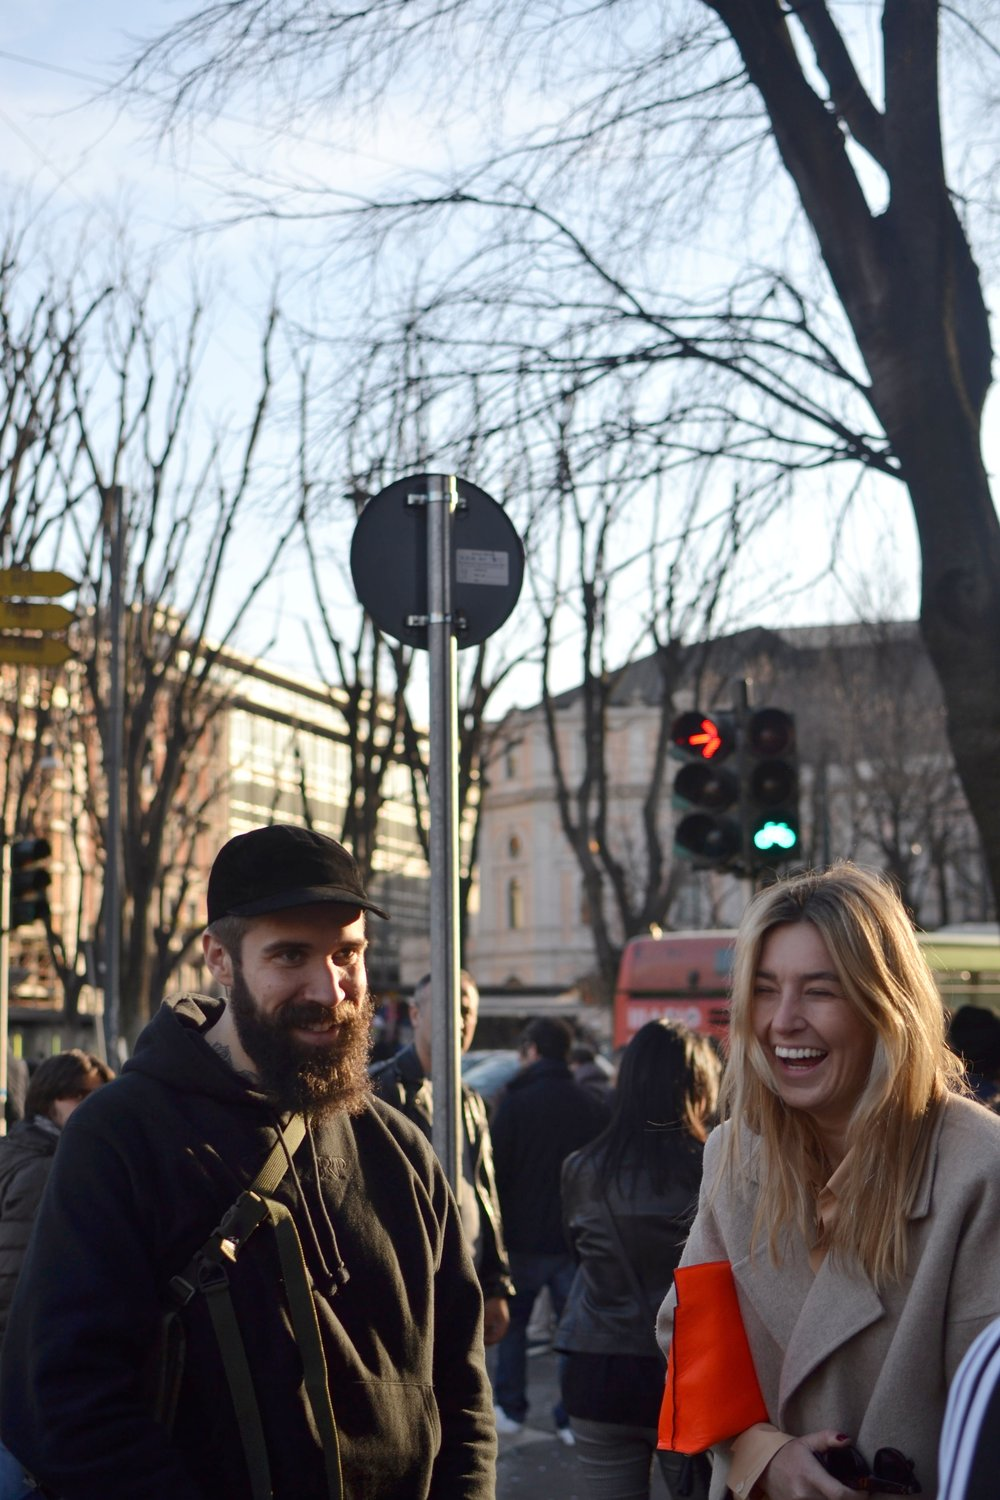 Adam Katz Sinding sharing a moment with Camille Charriere captured on my iPhone